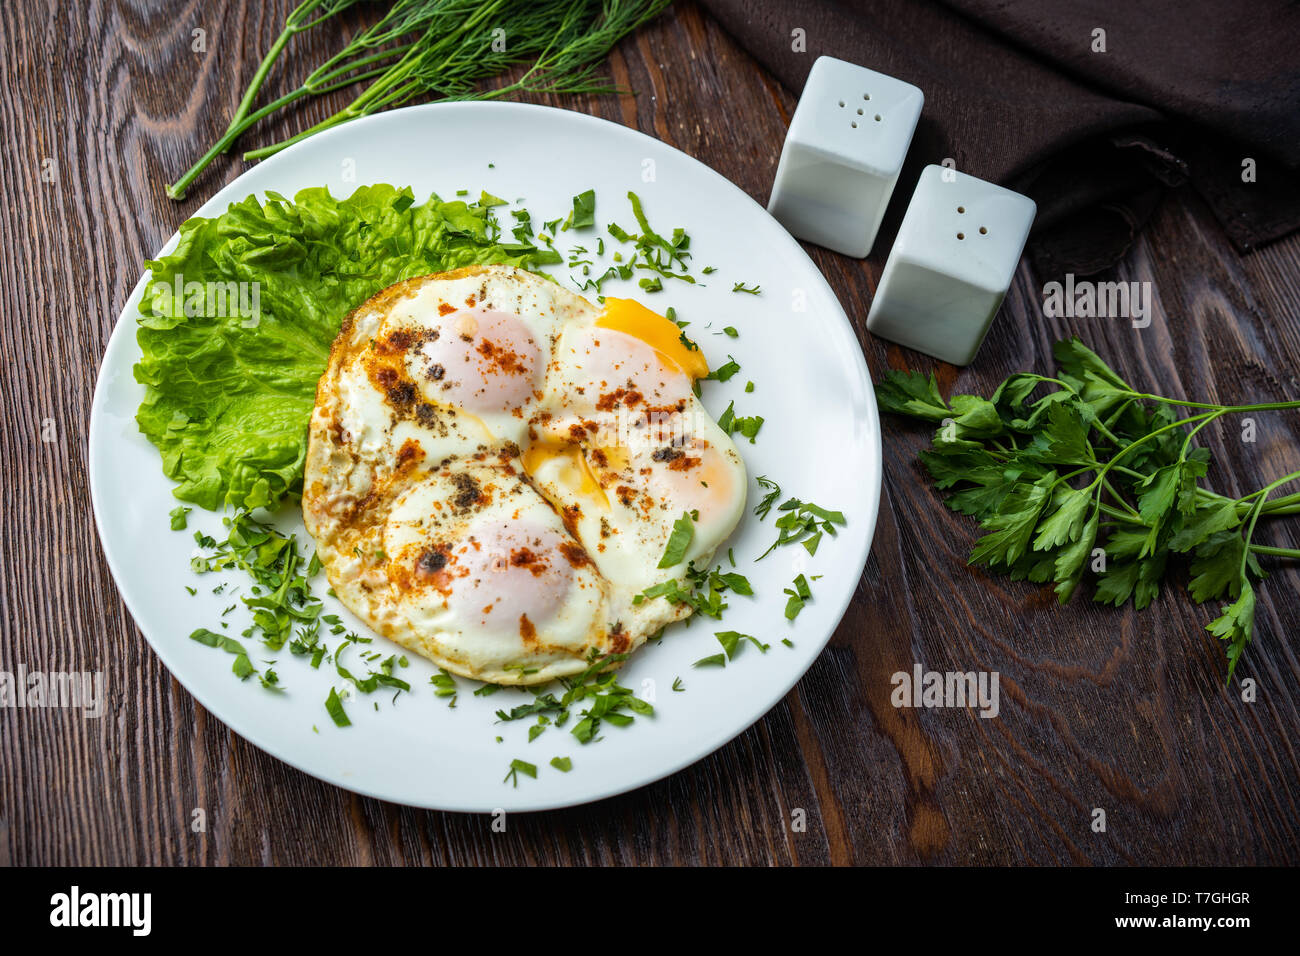 Flat lay of tasty breakfast over grey concrete table background. Fried eggs, micro greens, fresh tomatoes in plate, top view. Clean eating, dieting - Stock Image